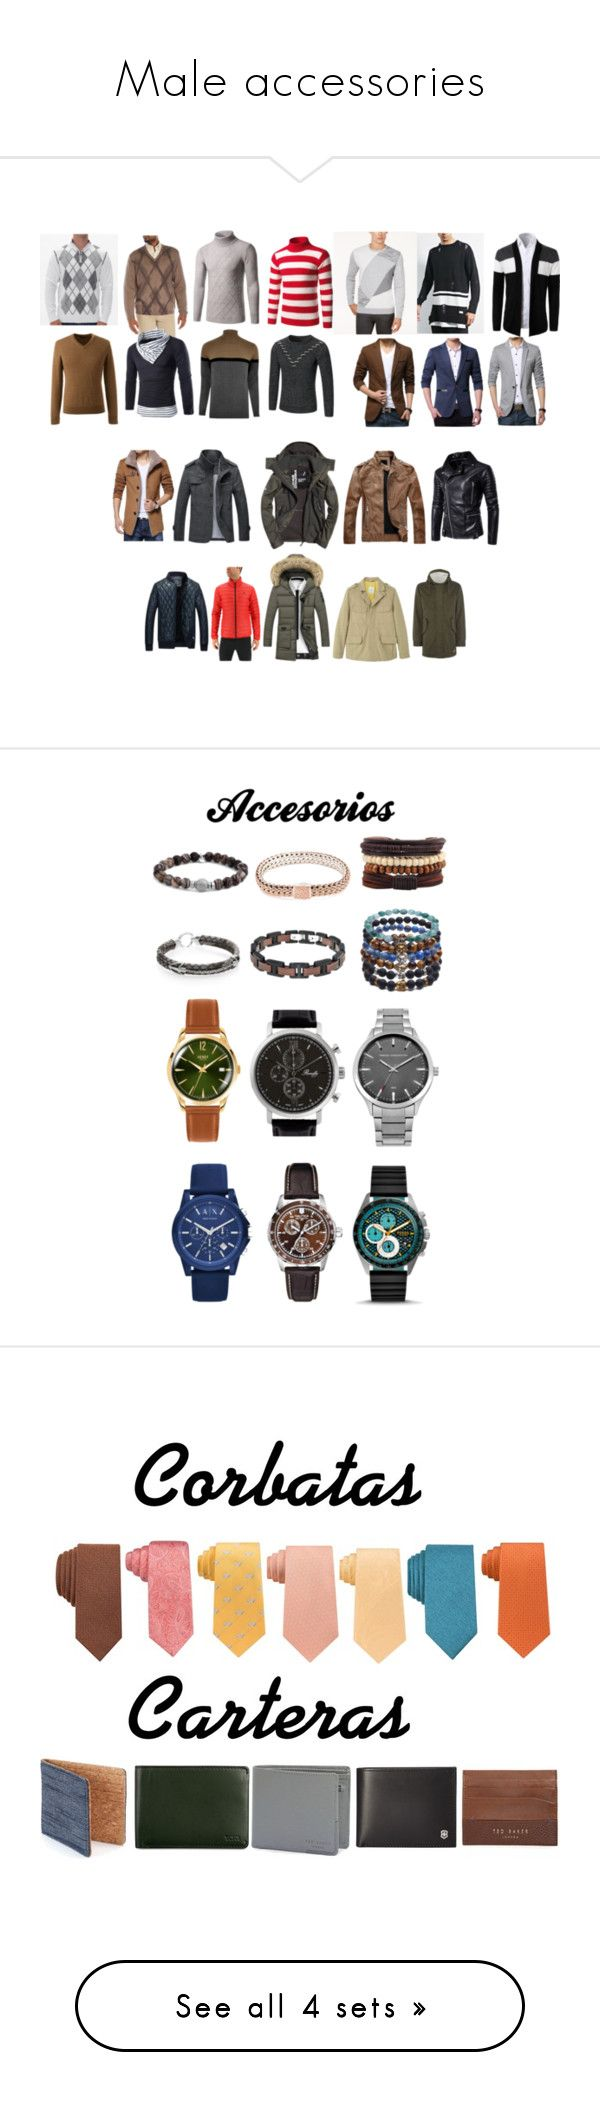 """Male accessories"" by belen-cool-look ❤ liked on Polyvore featuring 21 Men, Raffi, BKE, Lands' End, Alfani, River Island, Superdry, adidas, Jack & Jones and MANGO MAN"